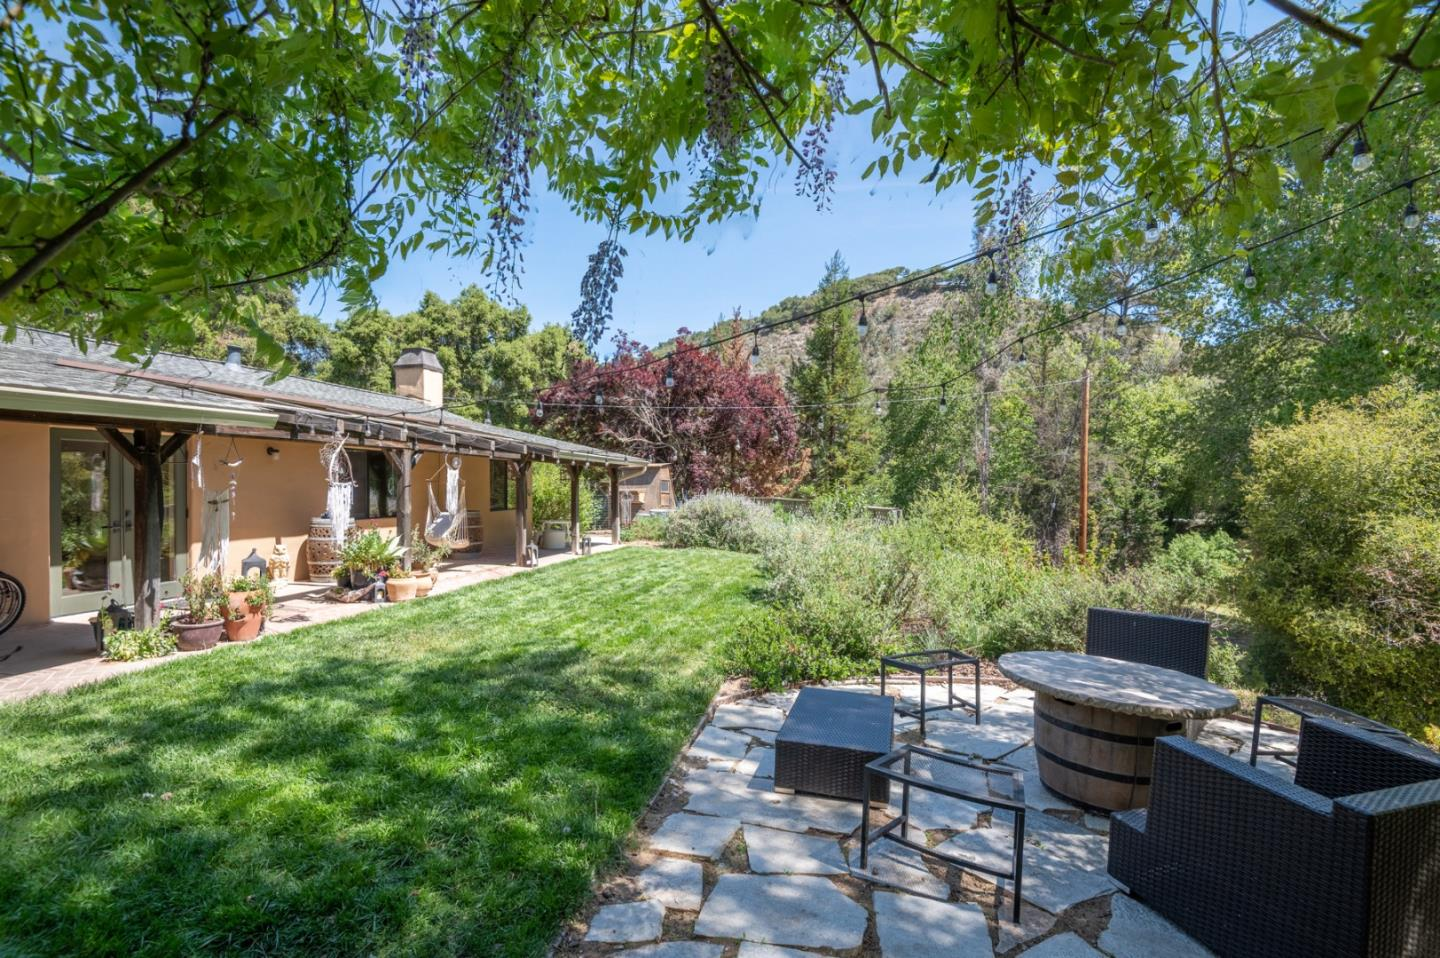 Property for sale at 33644 E Carmel Valley RD, Carmel Valley,  California 93924